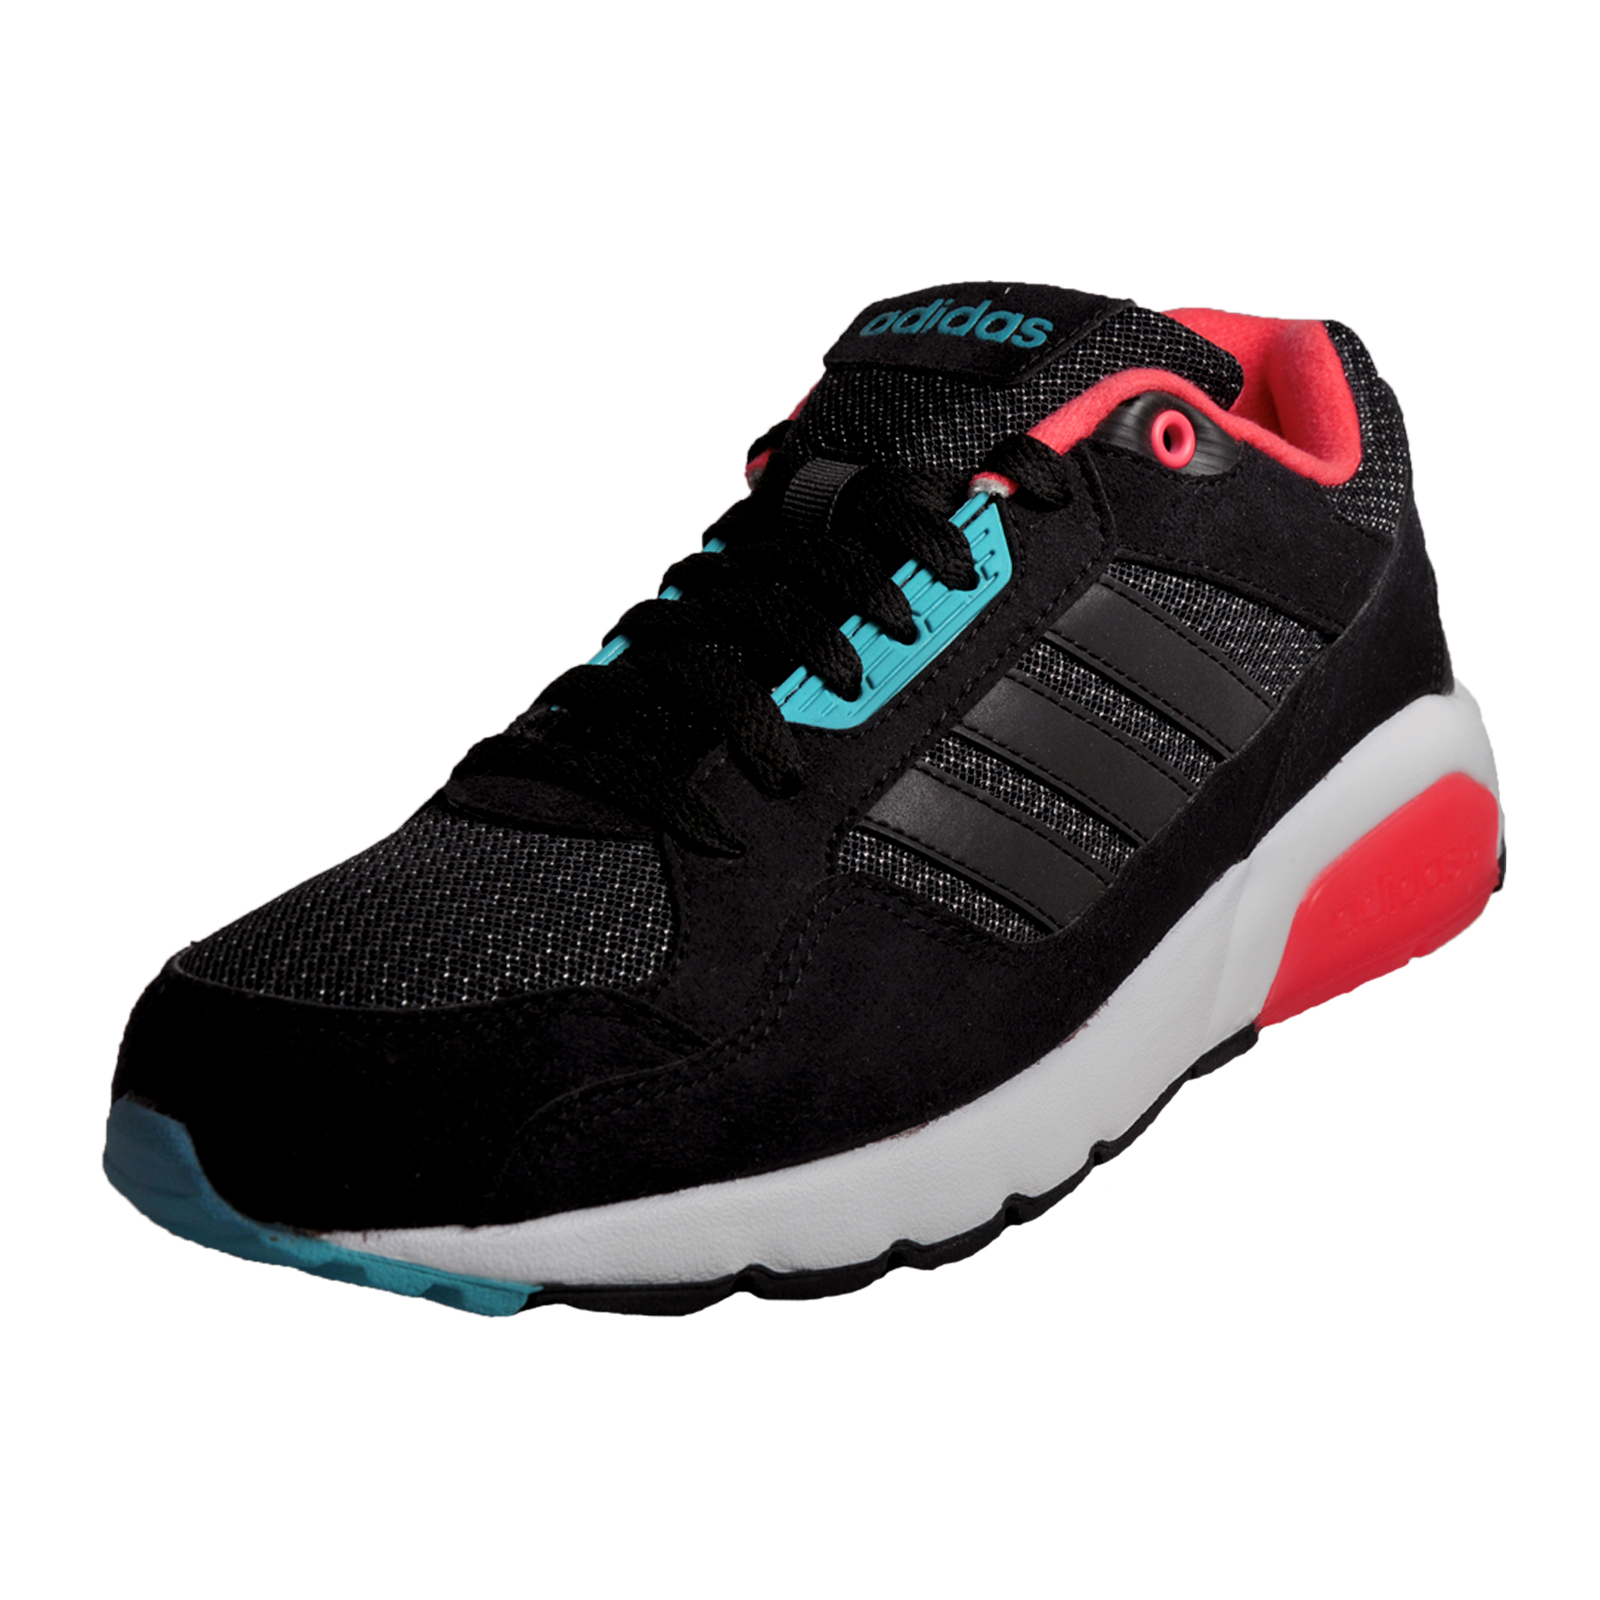 62986a819379 Details about Adidas Neo Run9tis Mens Classic Casual Retro Heritage Running  Trainers Black